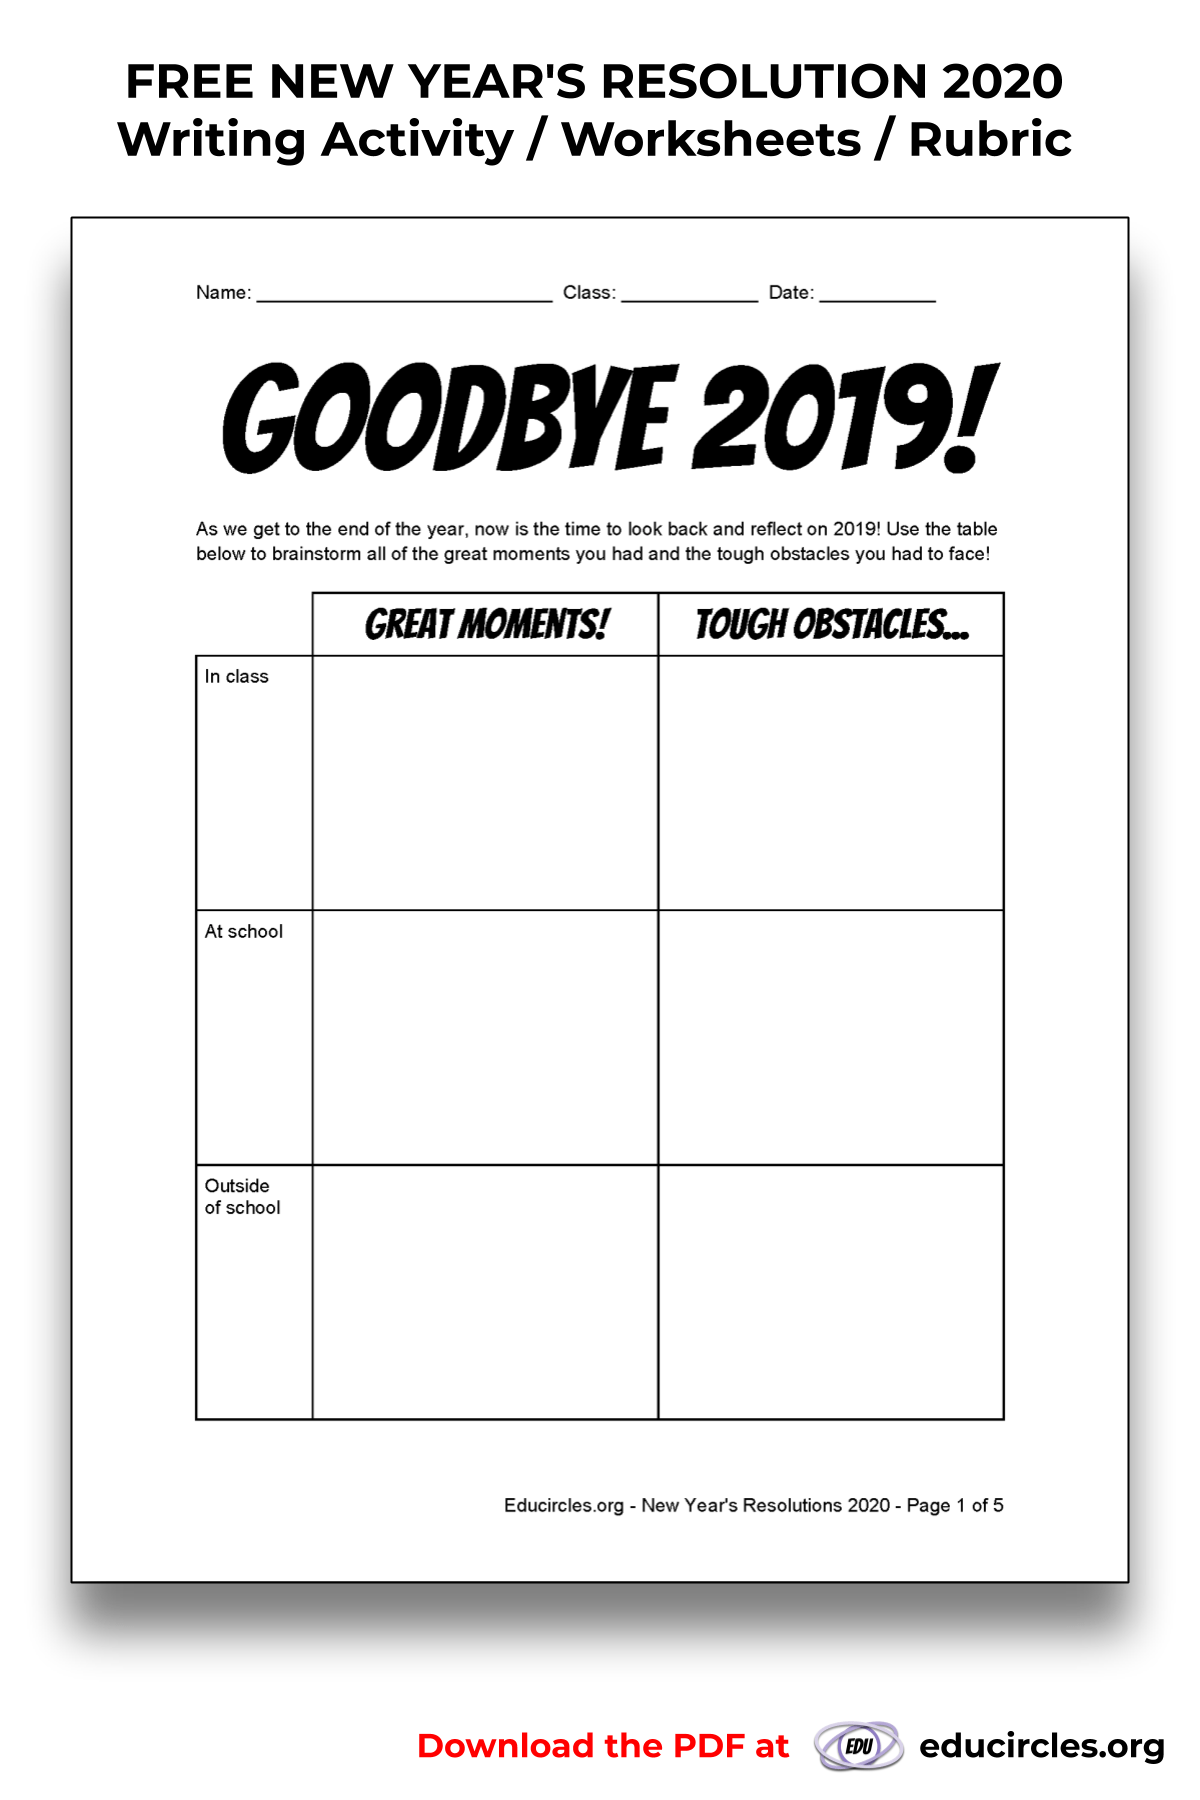 - FREE NEW YEAR'S RESOLUTION 2020 Writing Activity / Worksheet